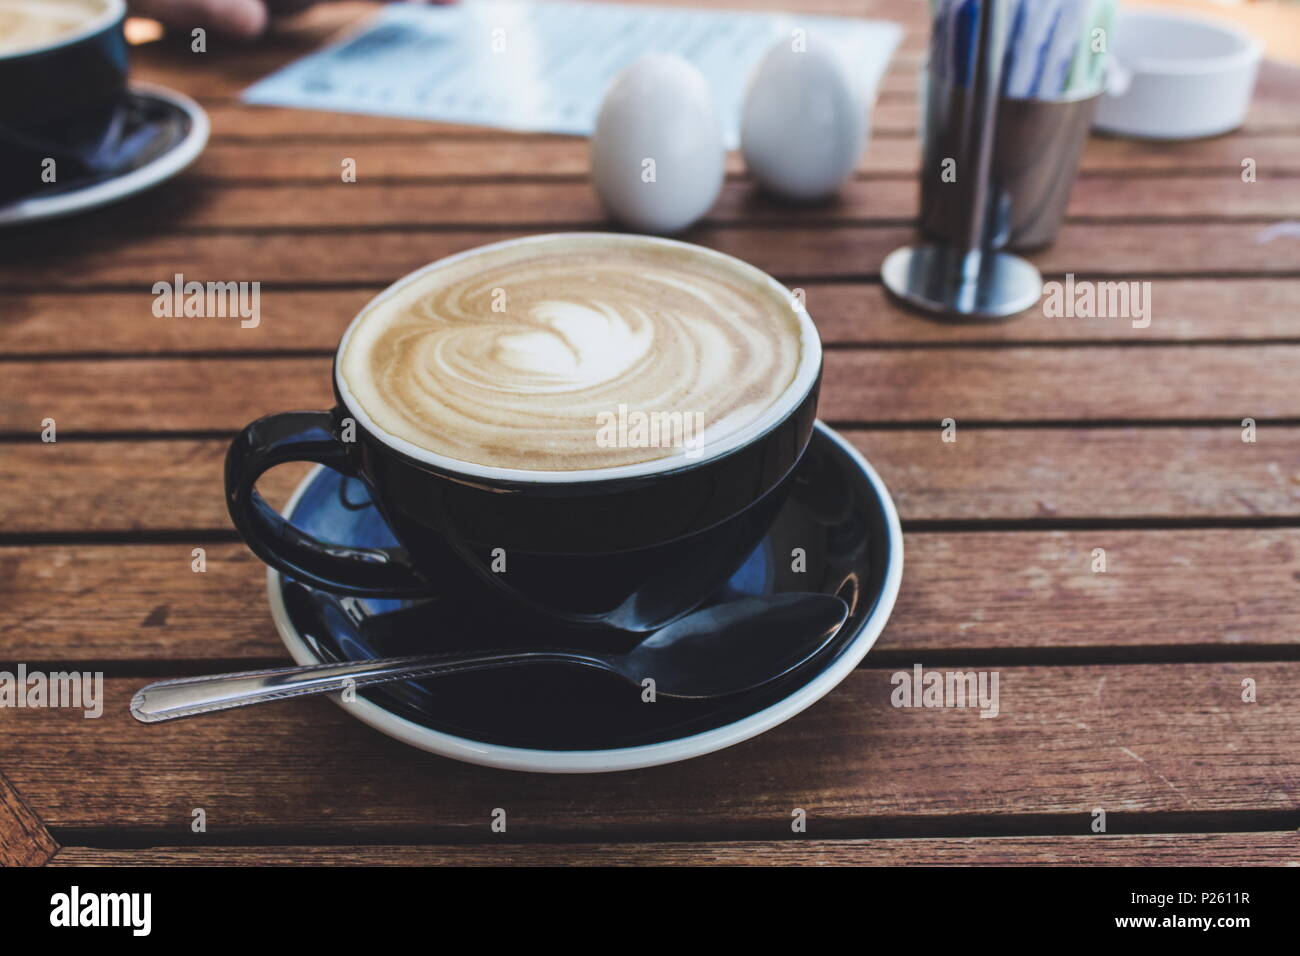 close up image of a hot cup of coffee in a black cup - Stock Image